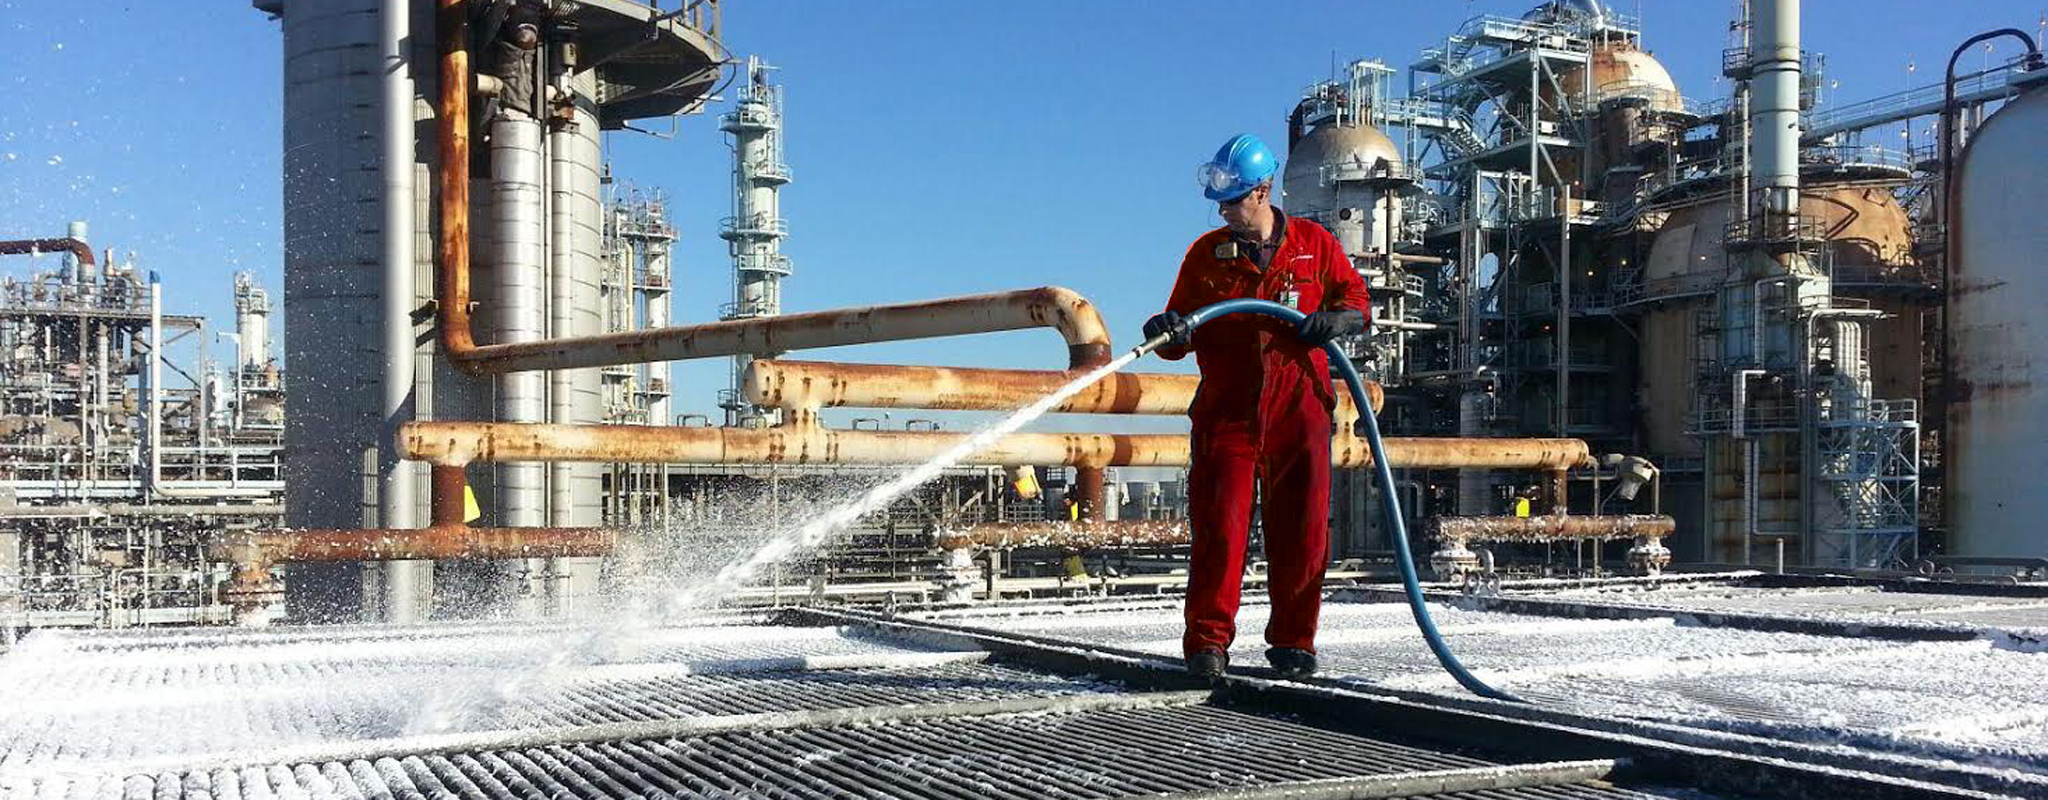 Chemical Cleaning Services : Industrial cleaning service thai nam